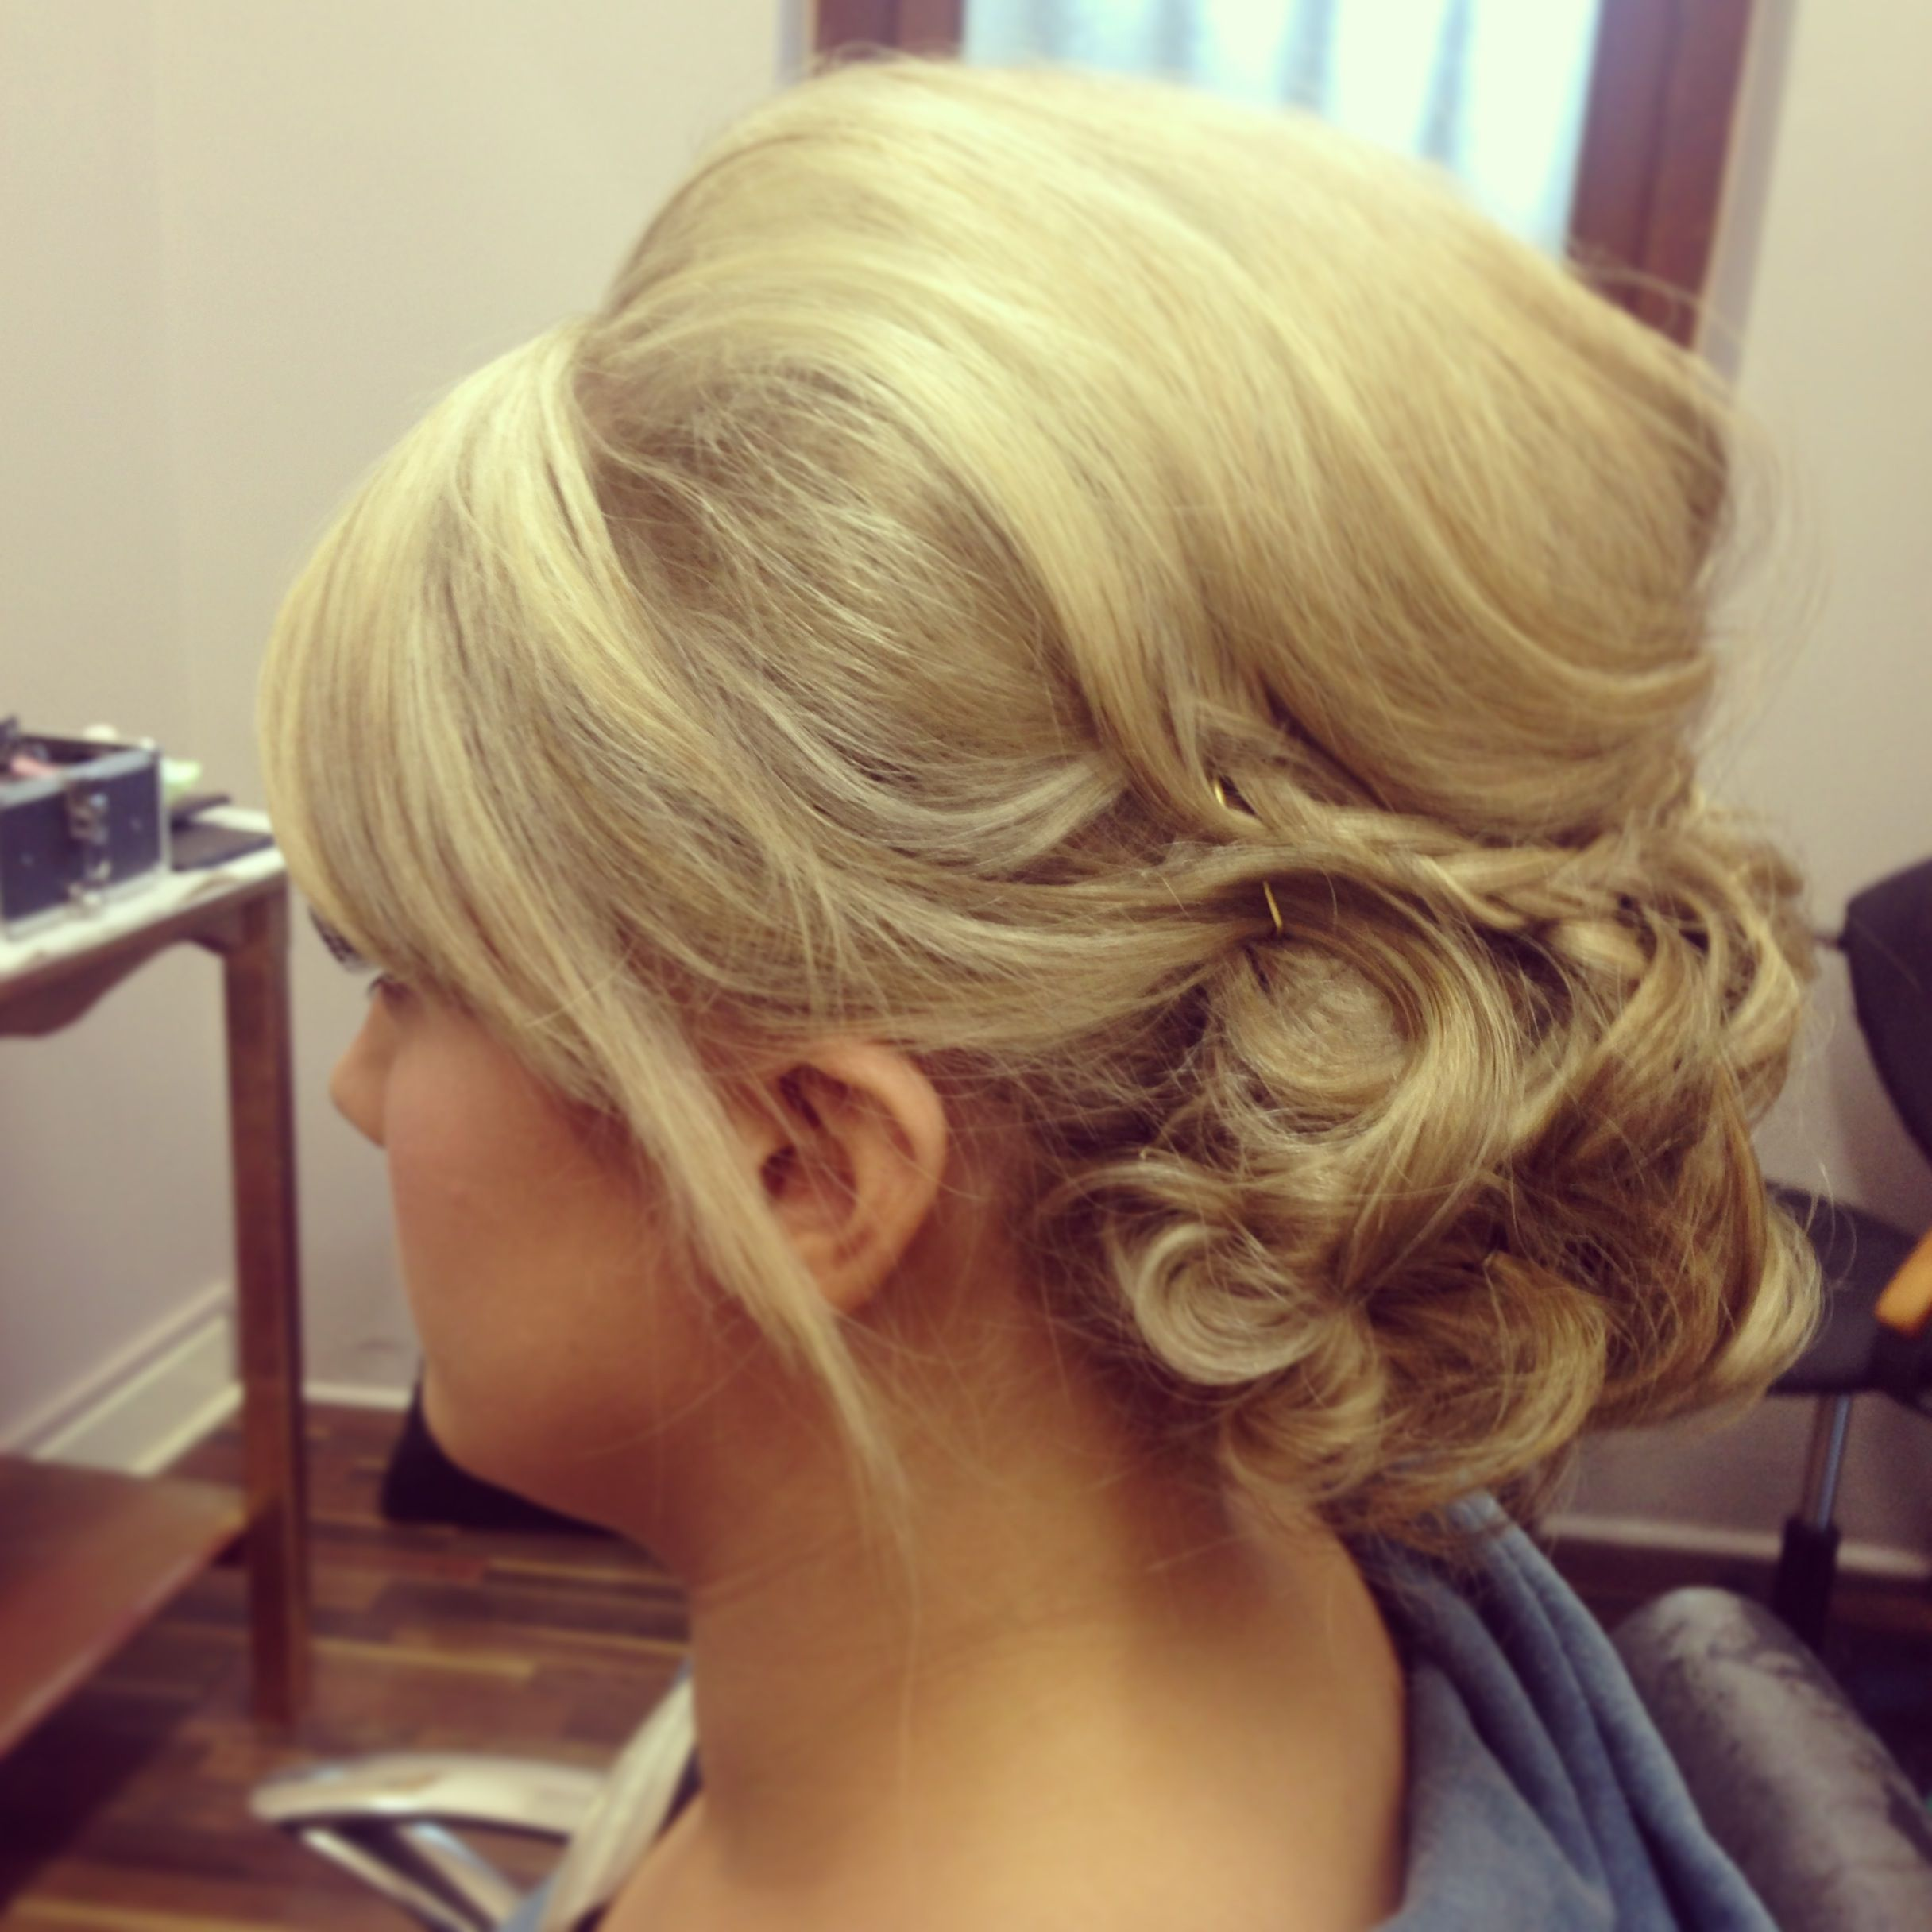 blonde soft curled upstyle with braids | wedding hairstyles